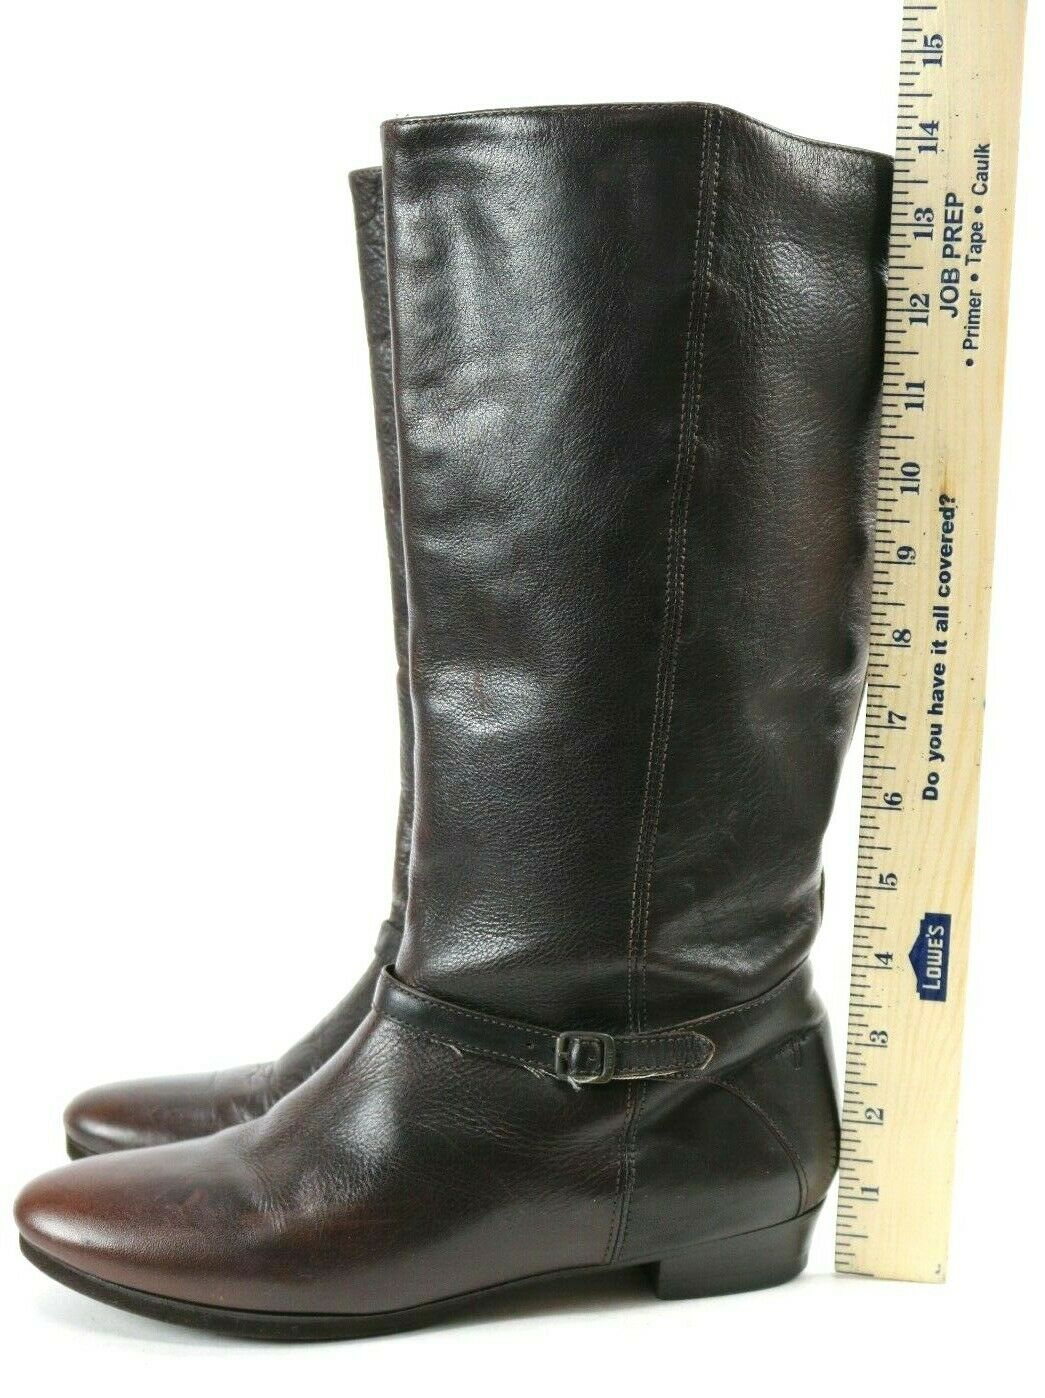 Frye Women's  298 Knee High High High Tall Boots Size 7.5 Leather Brown 107ef2